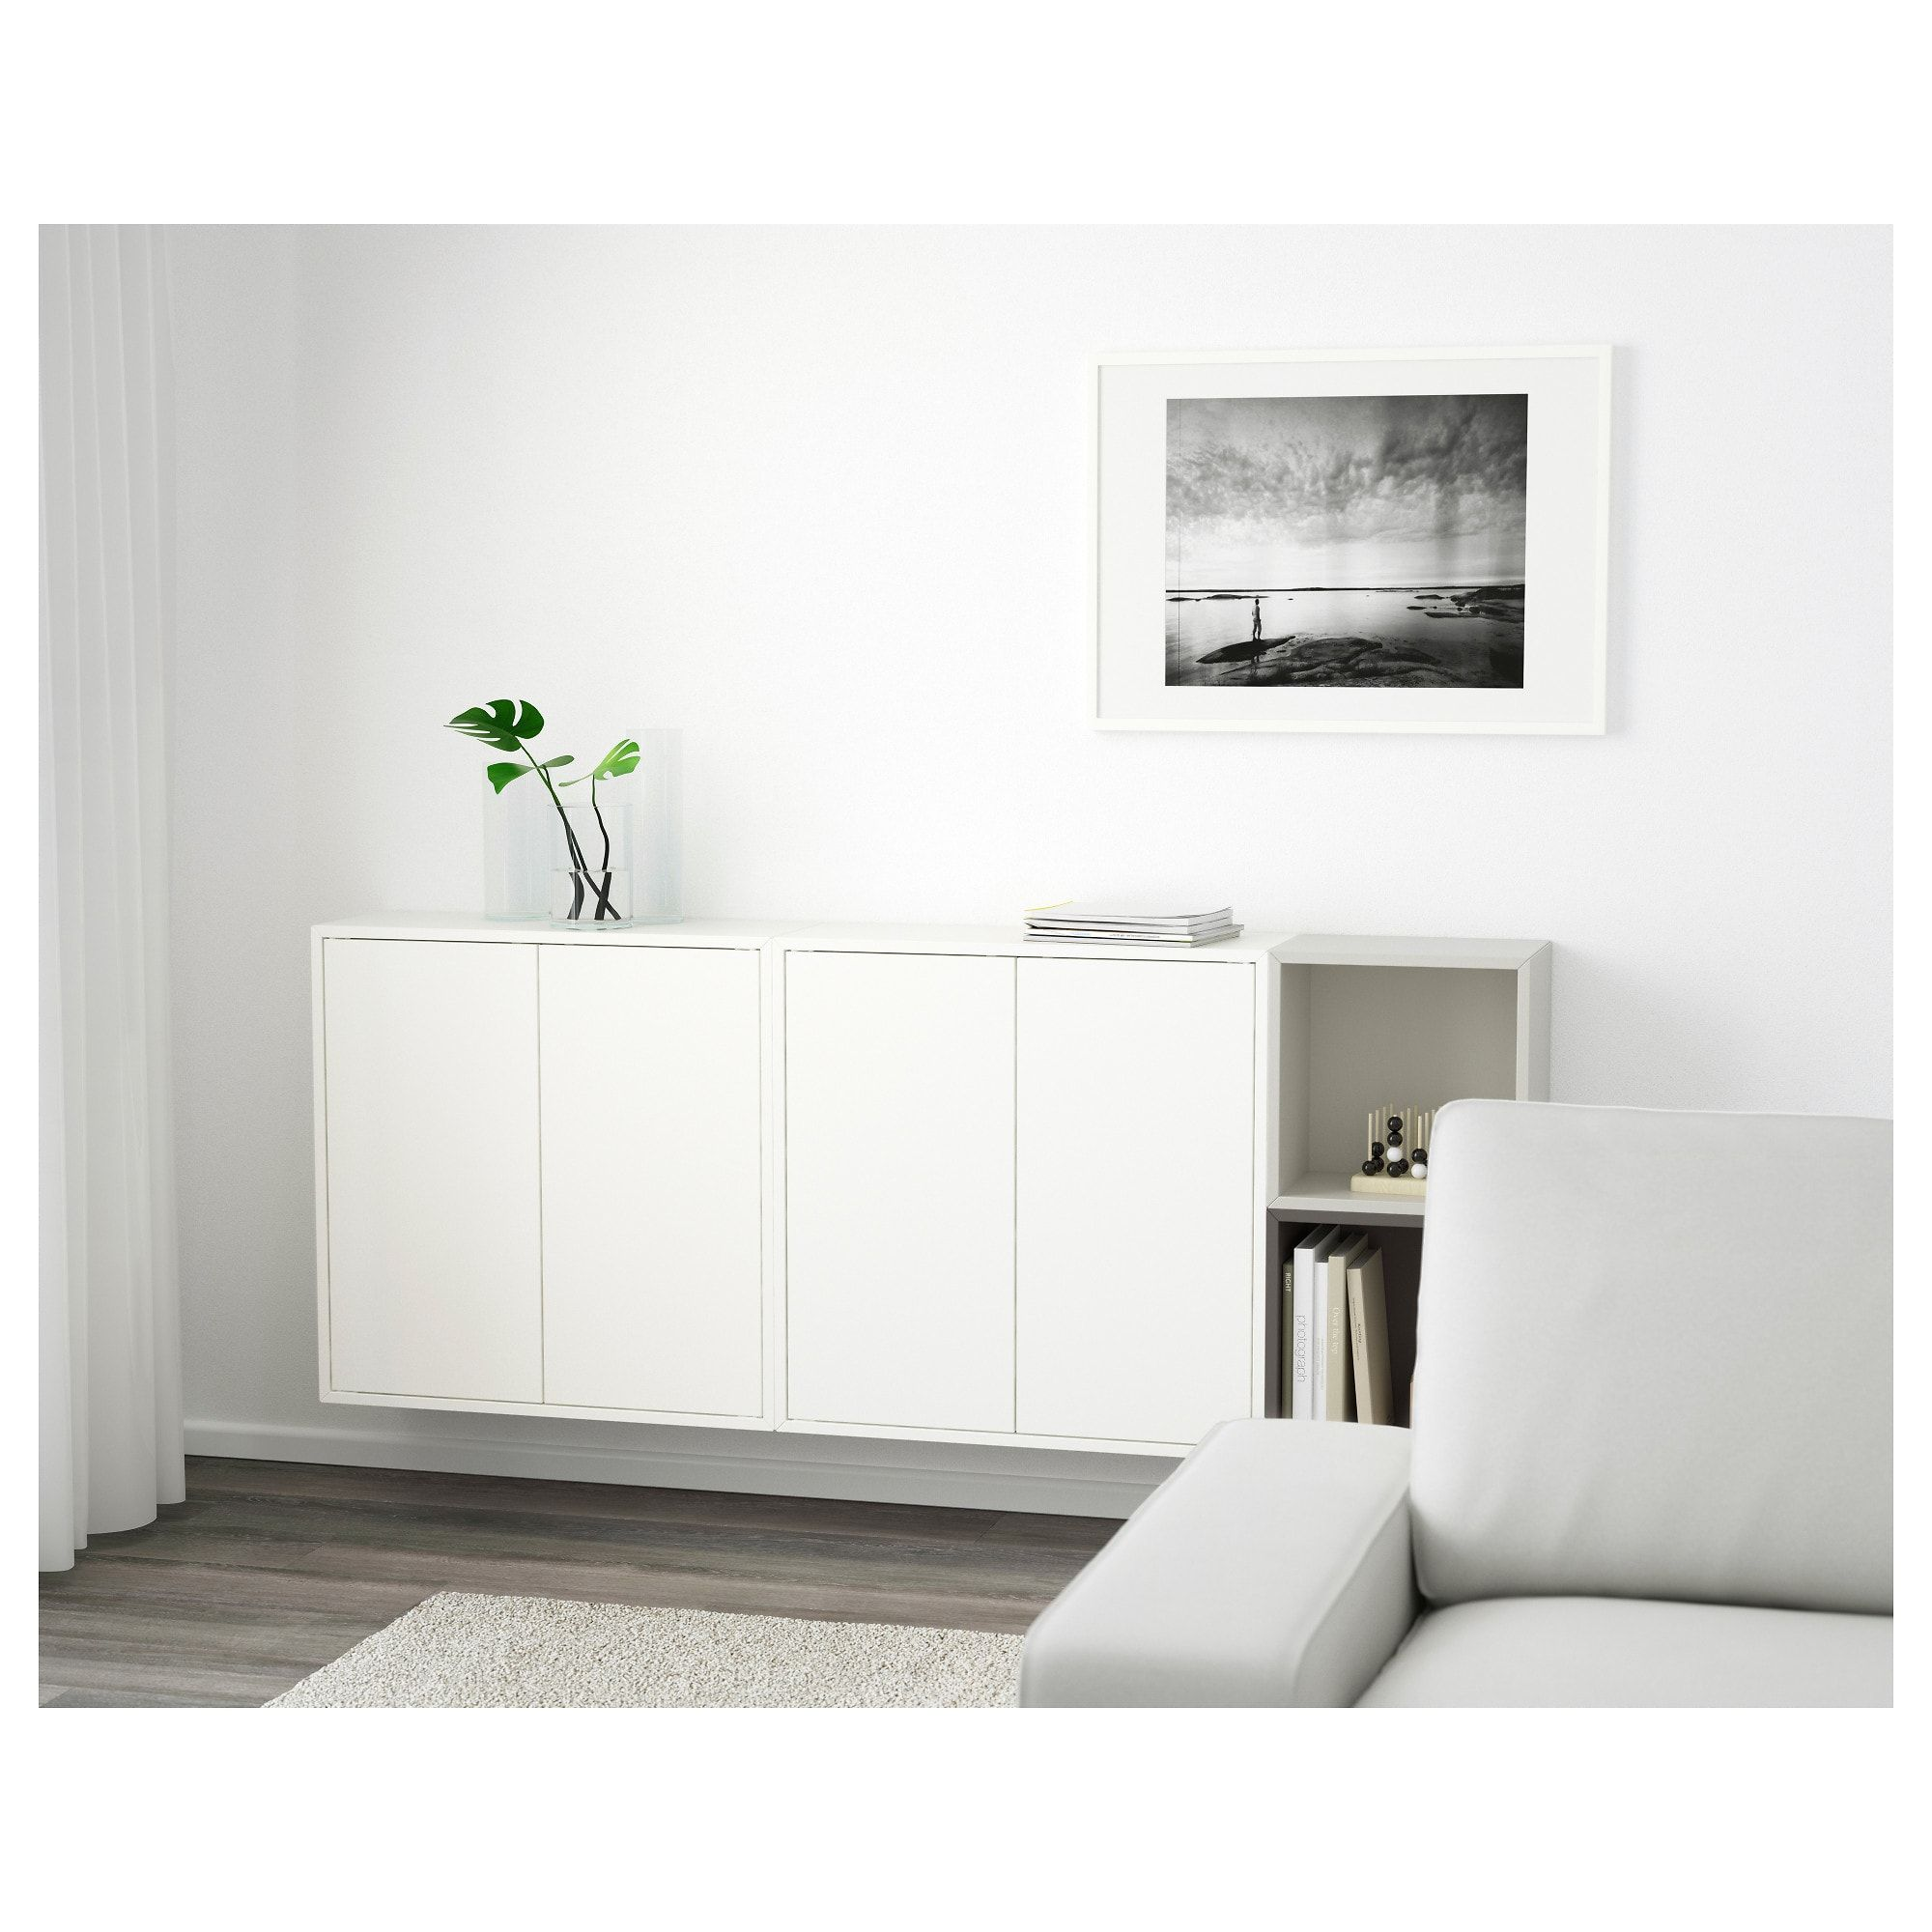 Eket Wall Mounted Cabinet Combination White Dark Gray Light Gray Learn More Ikea Ikea Wall Cabinets Ikea Wall Storage Wall Mounted Cabinet